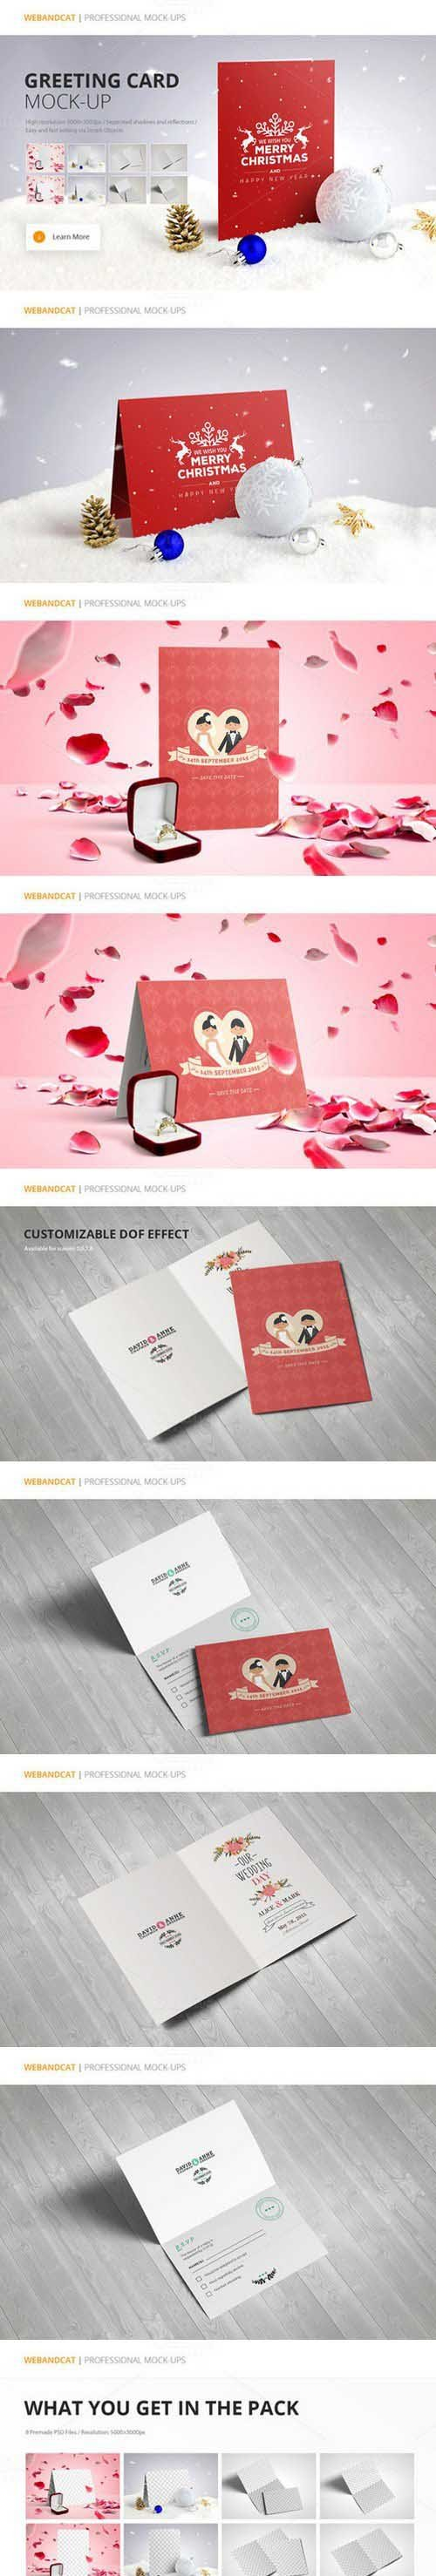 Invitation / Greeting Card Mock-Up 432125